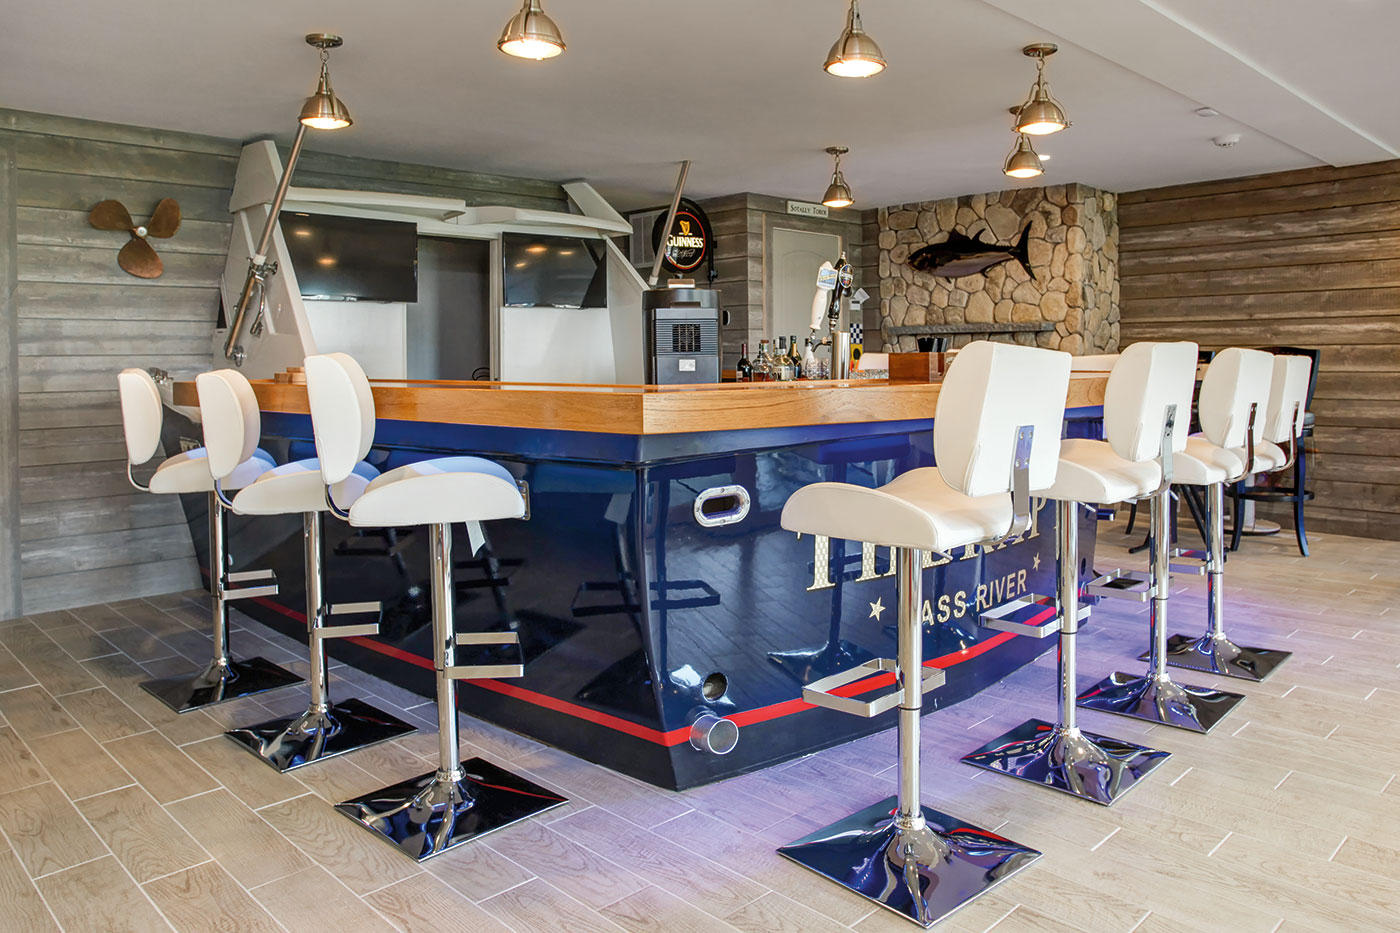 Real-life boat repurposed as a bar for a Cape Cod game room by Sand Dollar Customs builder and remodeler